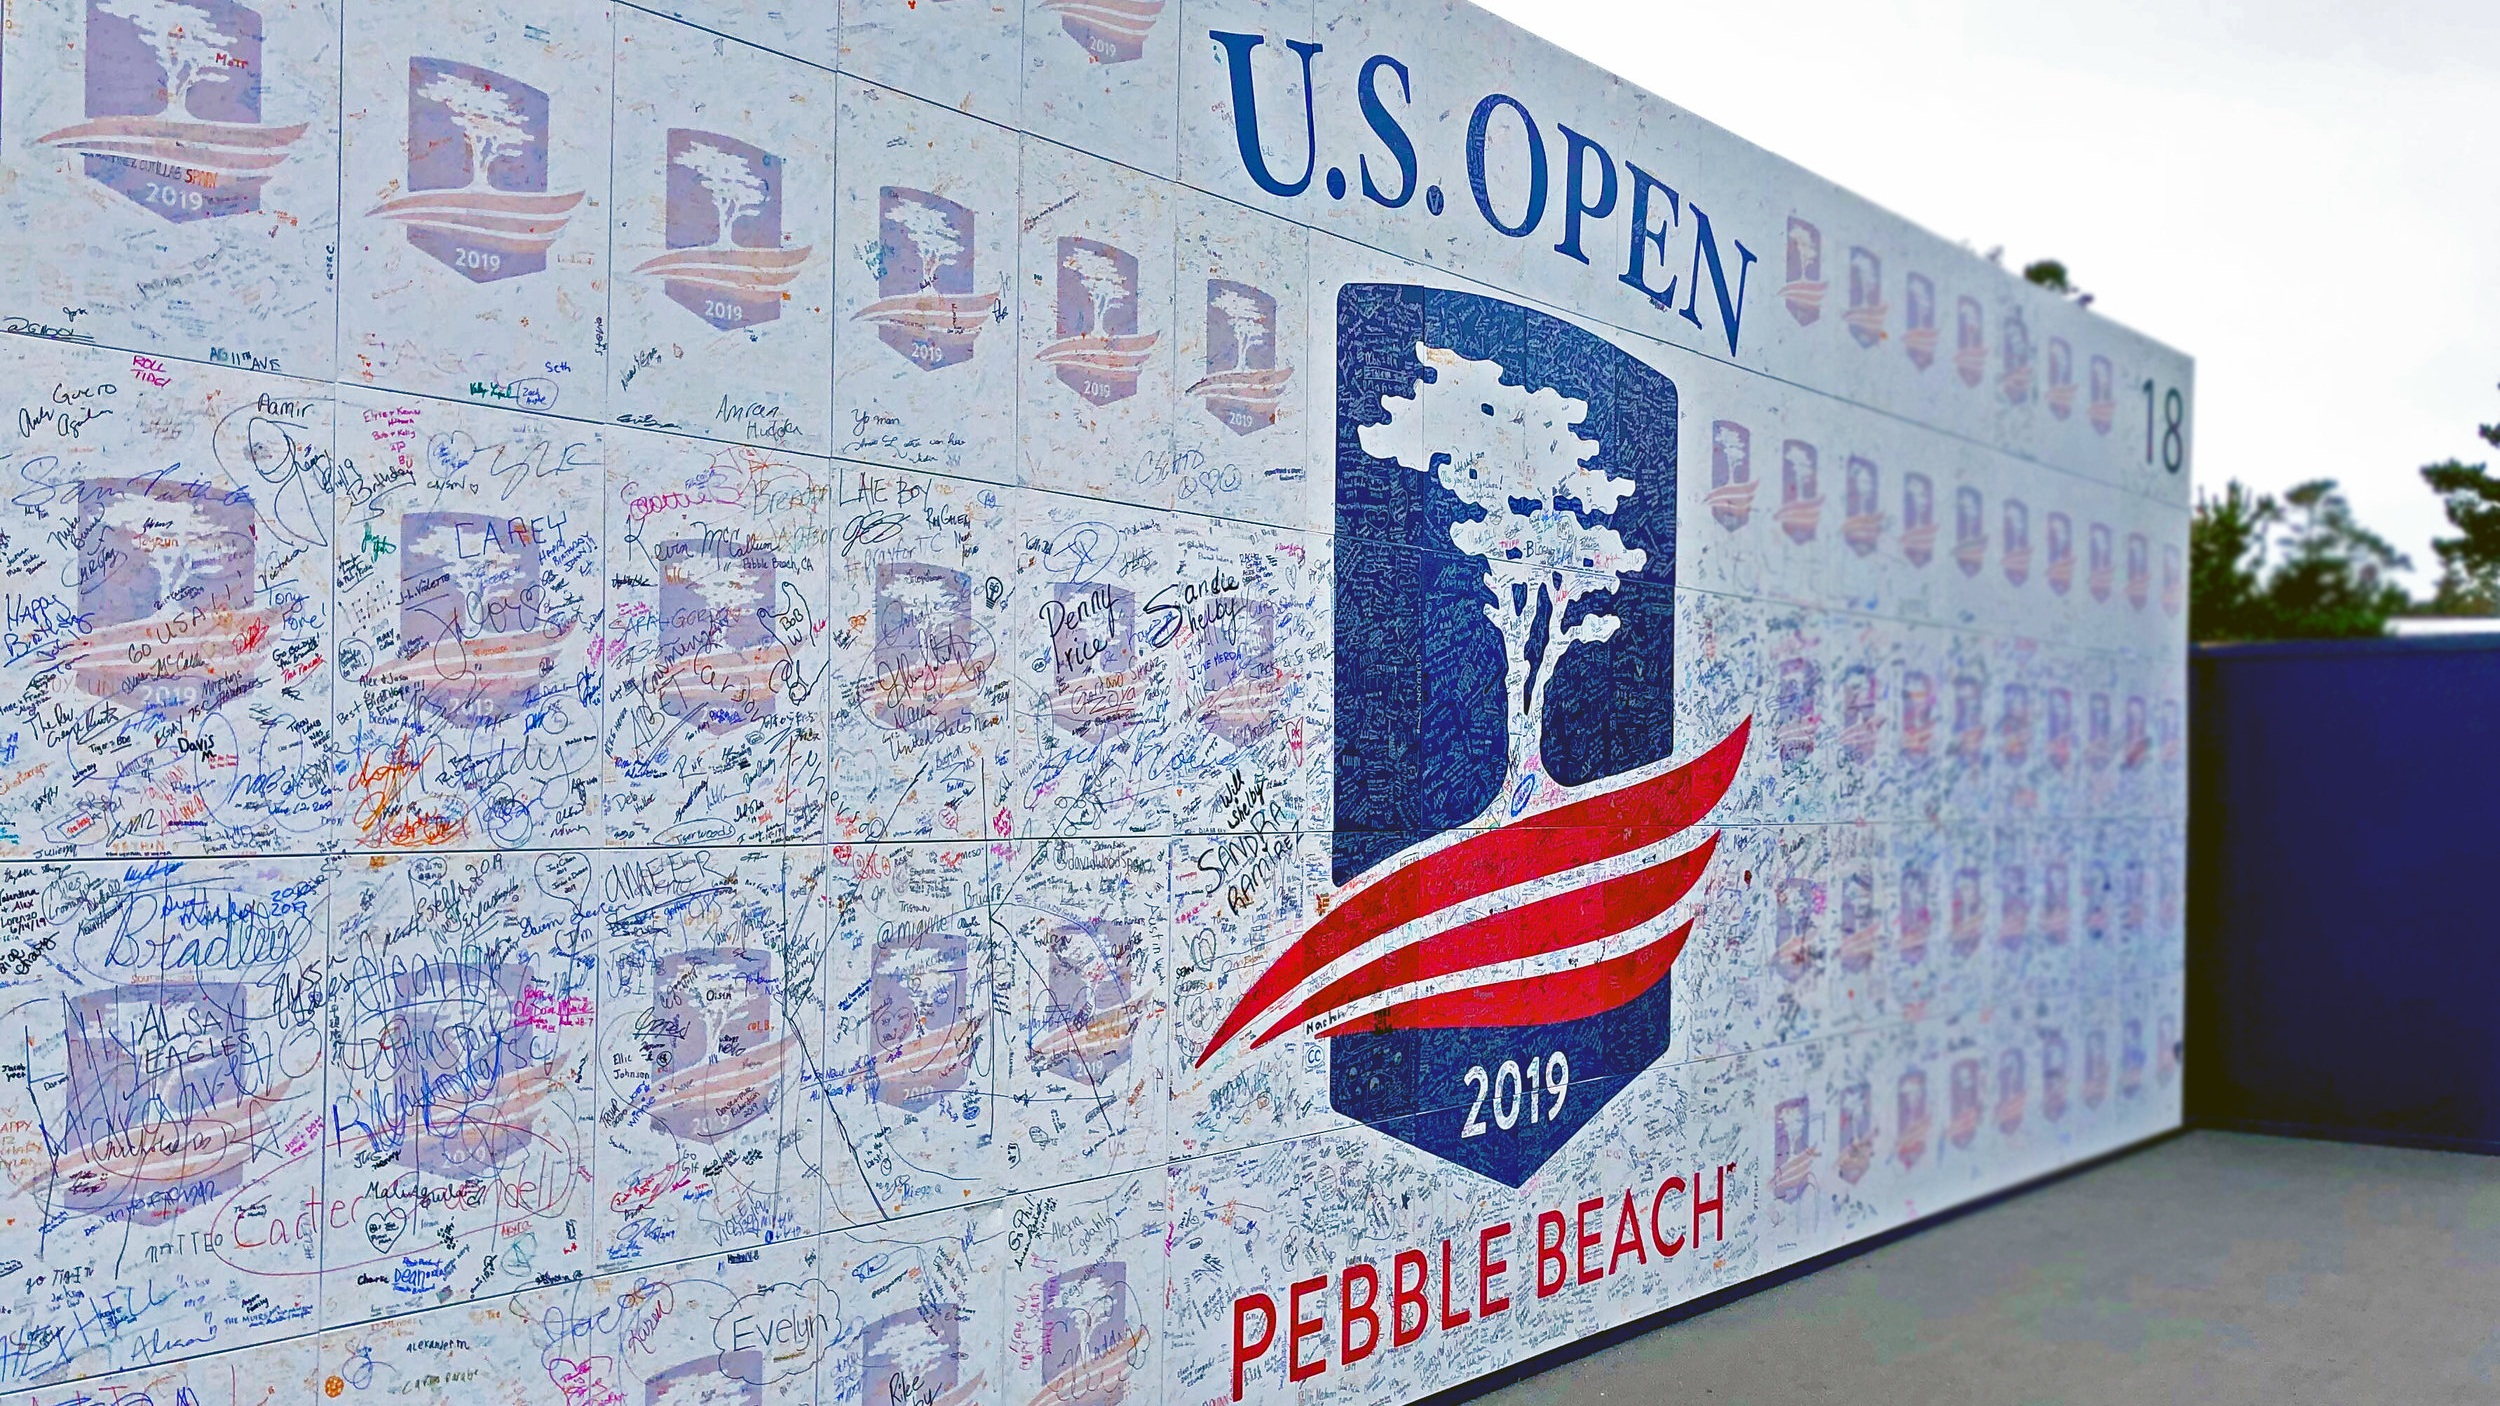 The 119th U.S. Open. was held at Pebble Beach Golf Links June 13-16. Pebble Beach is celebrating its 100th anniversary this year, and has hosted the U.S. Open 6 times.